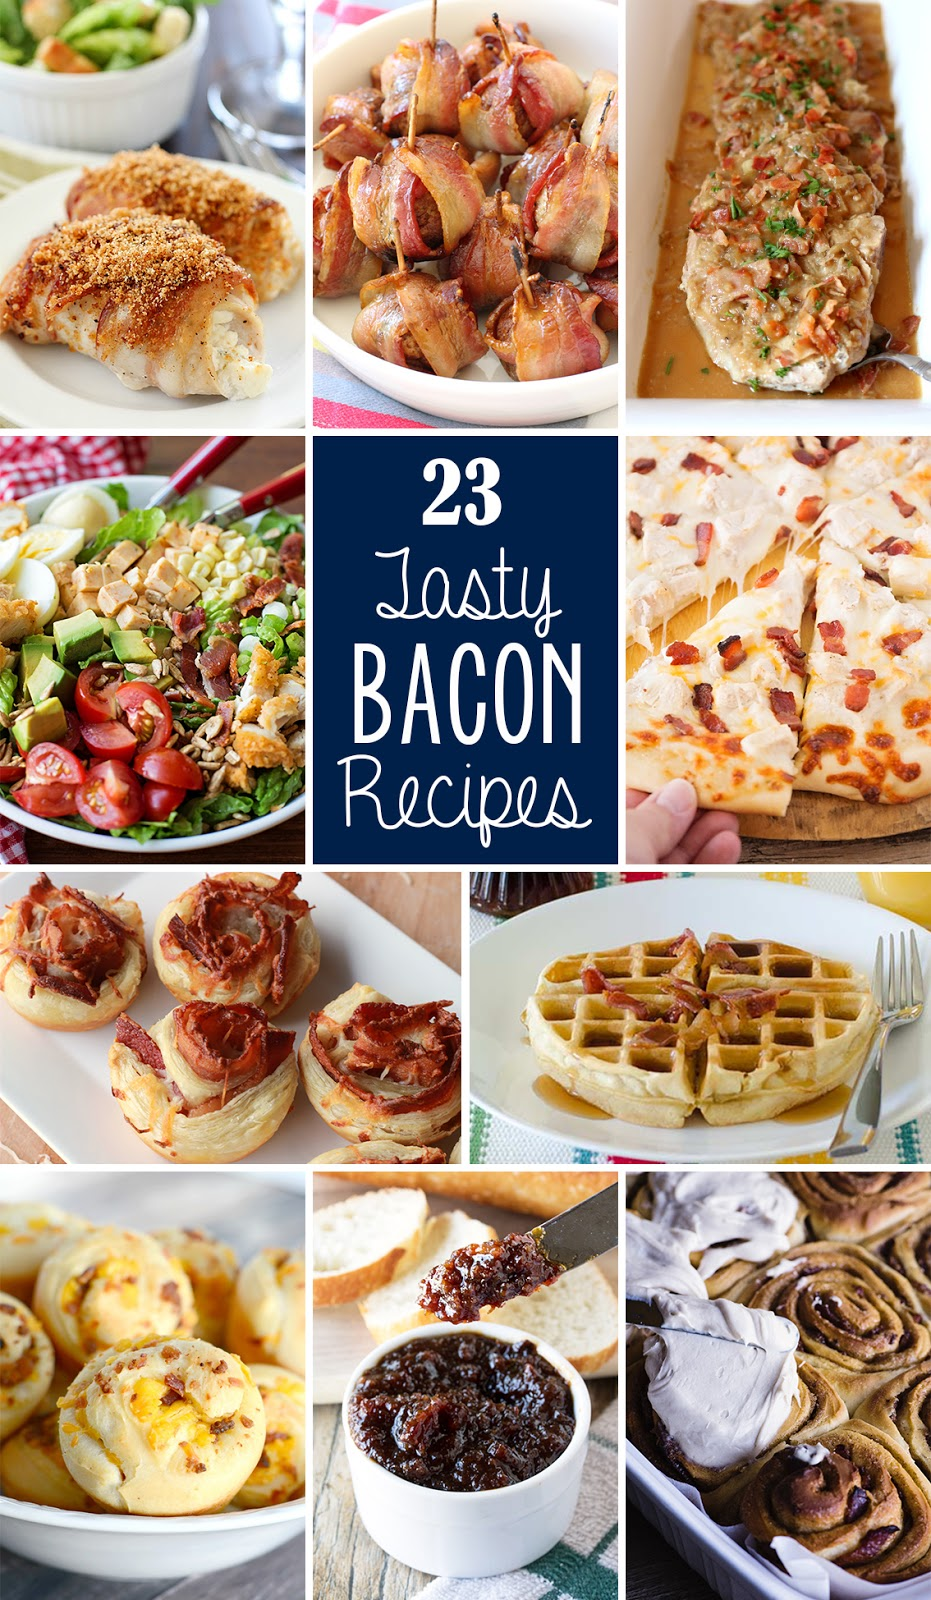 Celebrate International Bacon Day with 23 delicious bacon recipes from your favorite food bloggers!